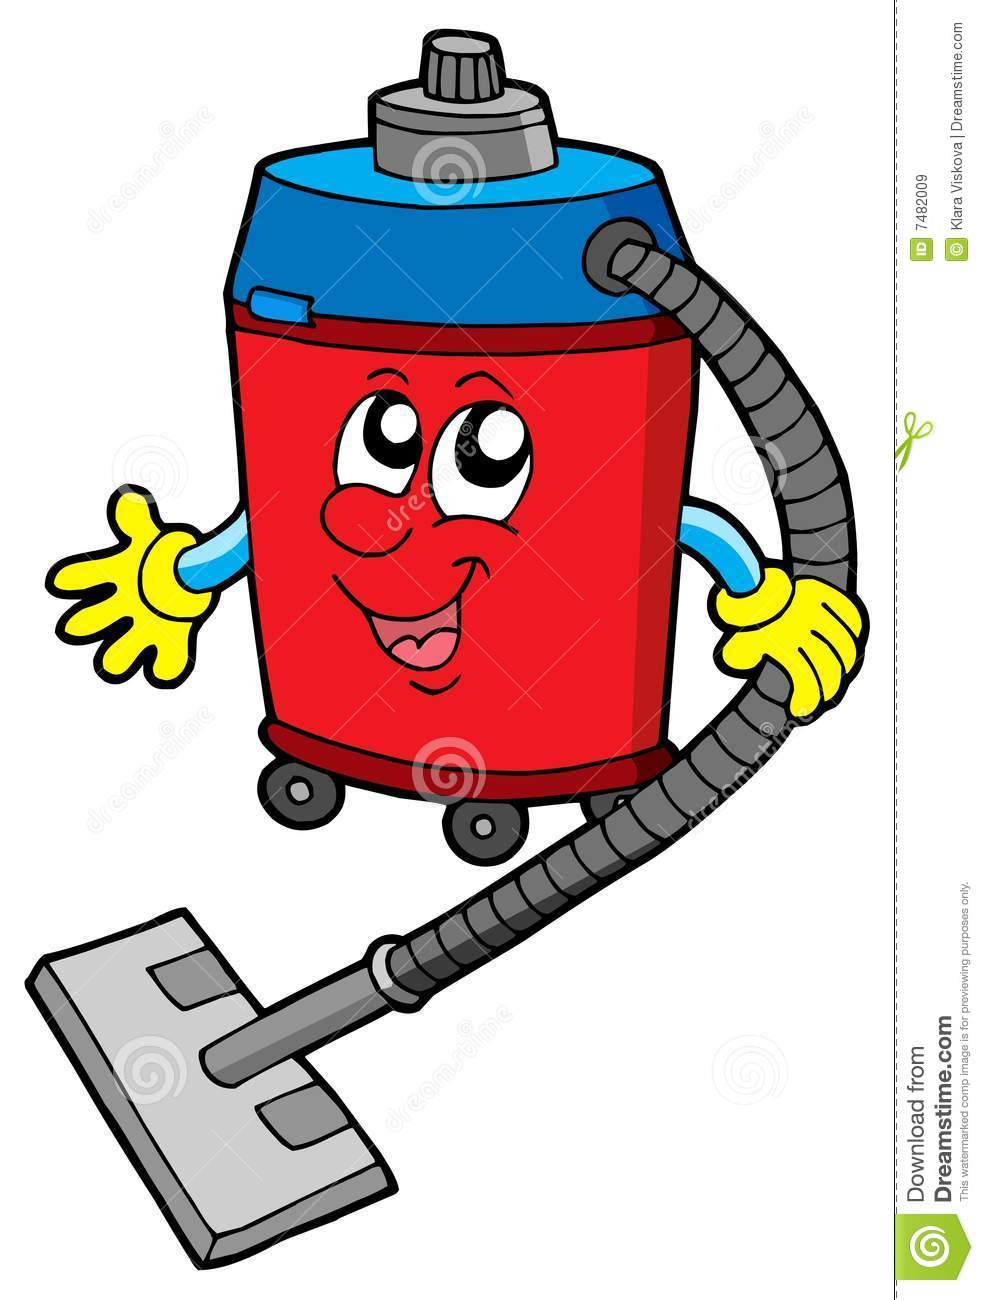 Vacuum cleaner clipart vacuum cleaner clip art - Cleaner Cute Illustration Vacuum